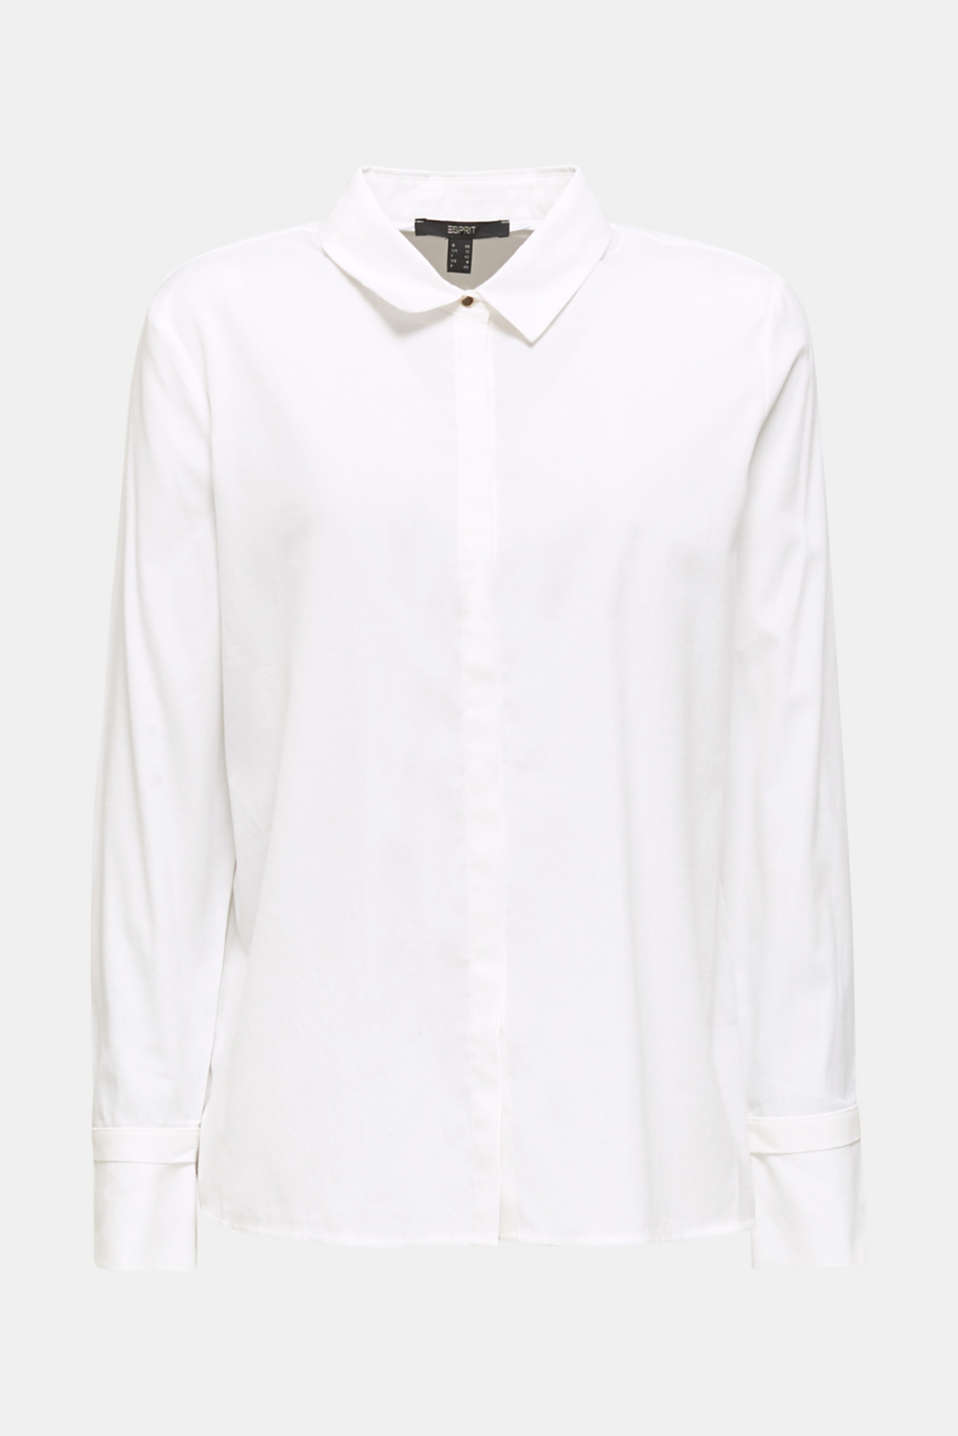 Crêpe blouse with elegant details, 100% cotton, OFF WHITE, detail image number 7